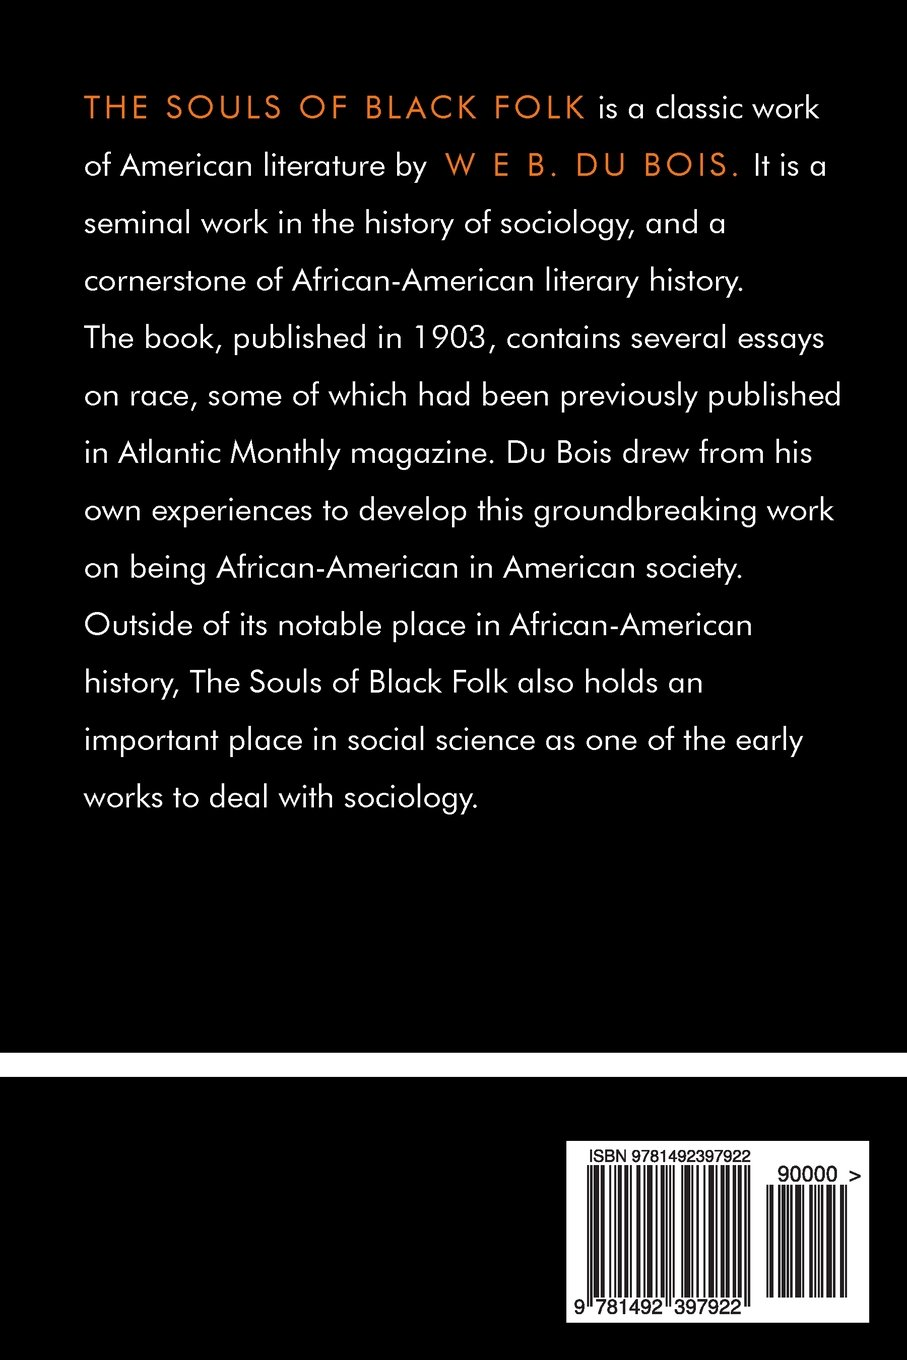 web dubois essays com the souls of black folk w e b du images  com the souls of black folk w e b du com the souls of black folk 9781492397922 w e b